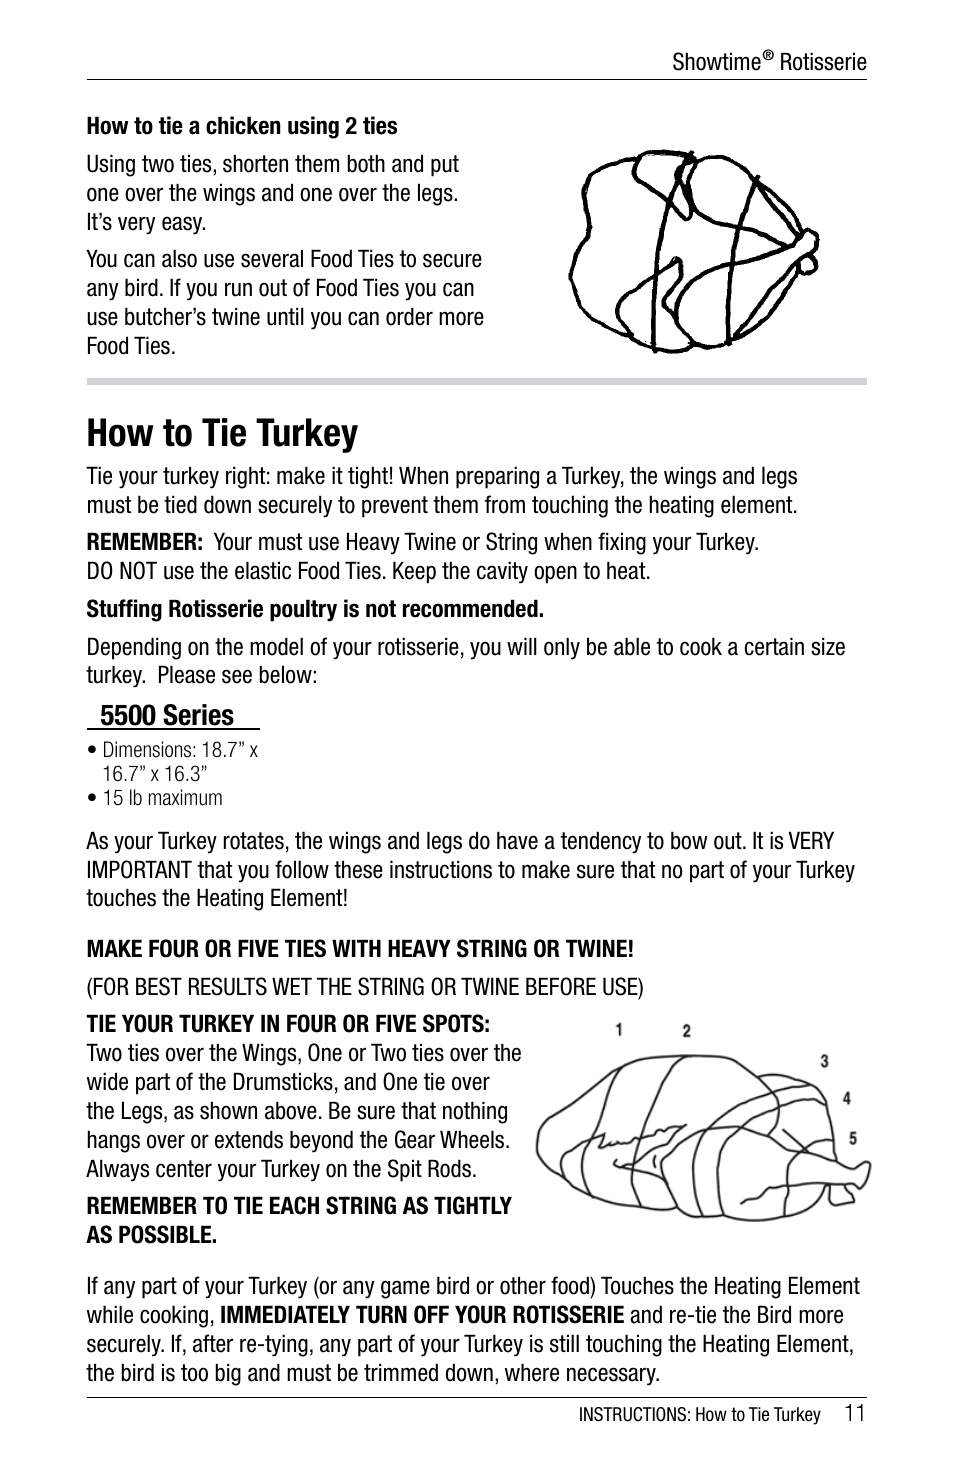 How to tie turkey 5500 series ronco 5500 series stainless how to tie turkey 5500 series ronco 5500 series stainless rotisserie oven user manual page 11 32 ccuart Image collections